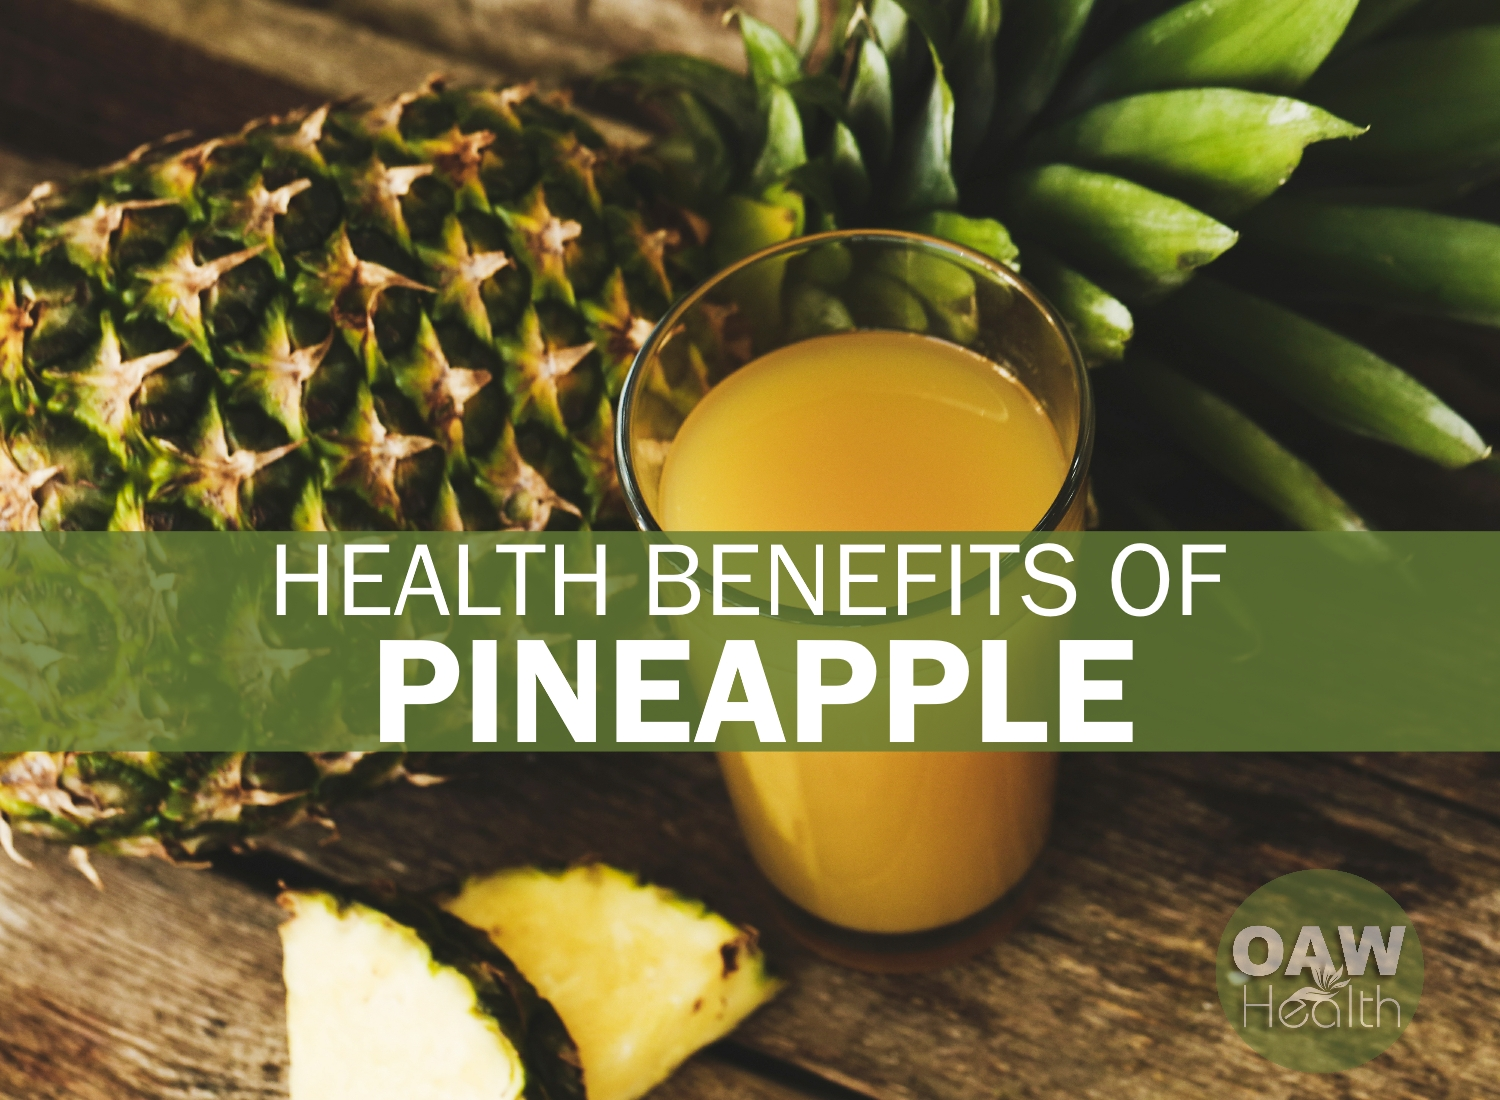 19 Health Benefits of Pineapple